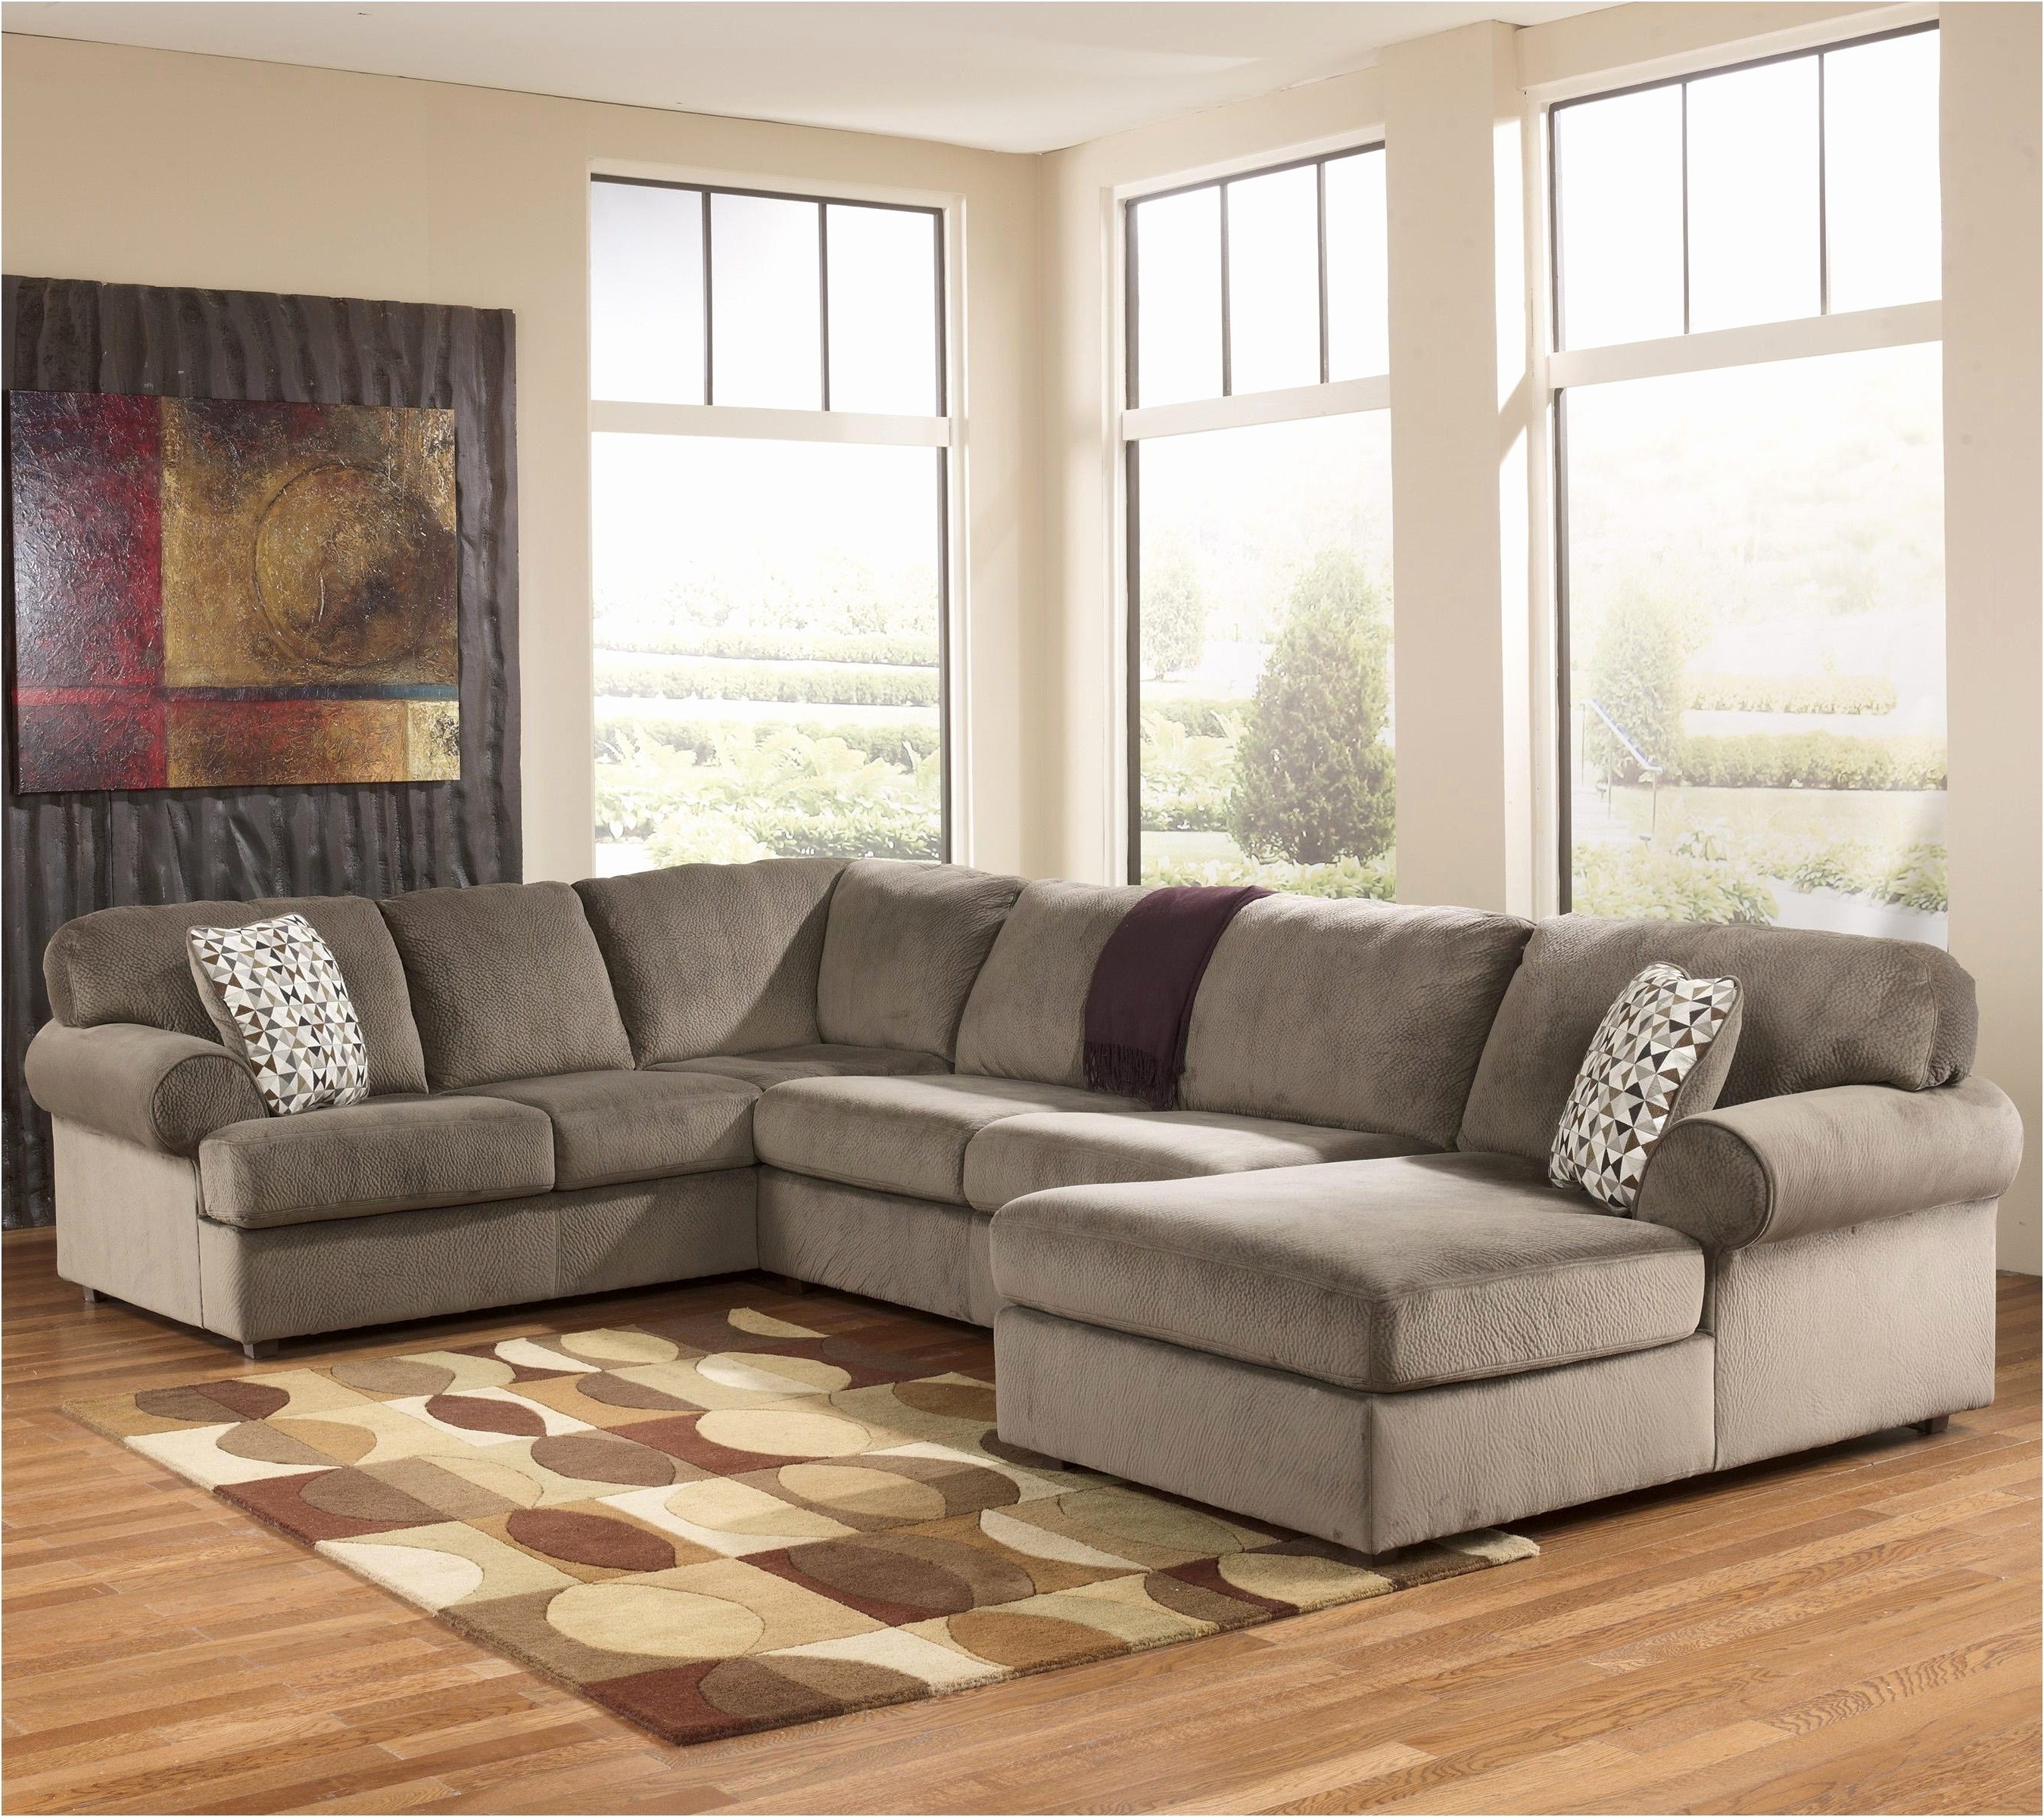 Duluth Mn Sectional Sofas Inside 2018 Sectional Sofas Mn (View 3 of 15)